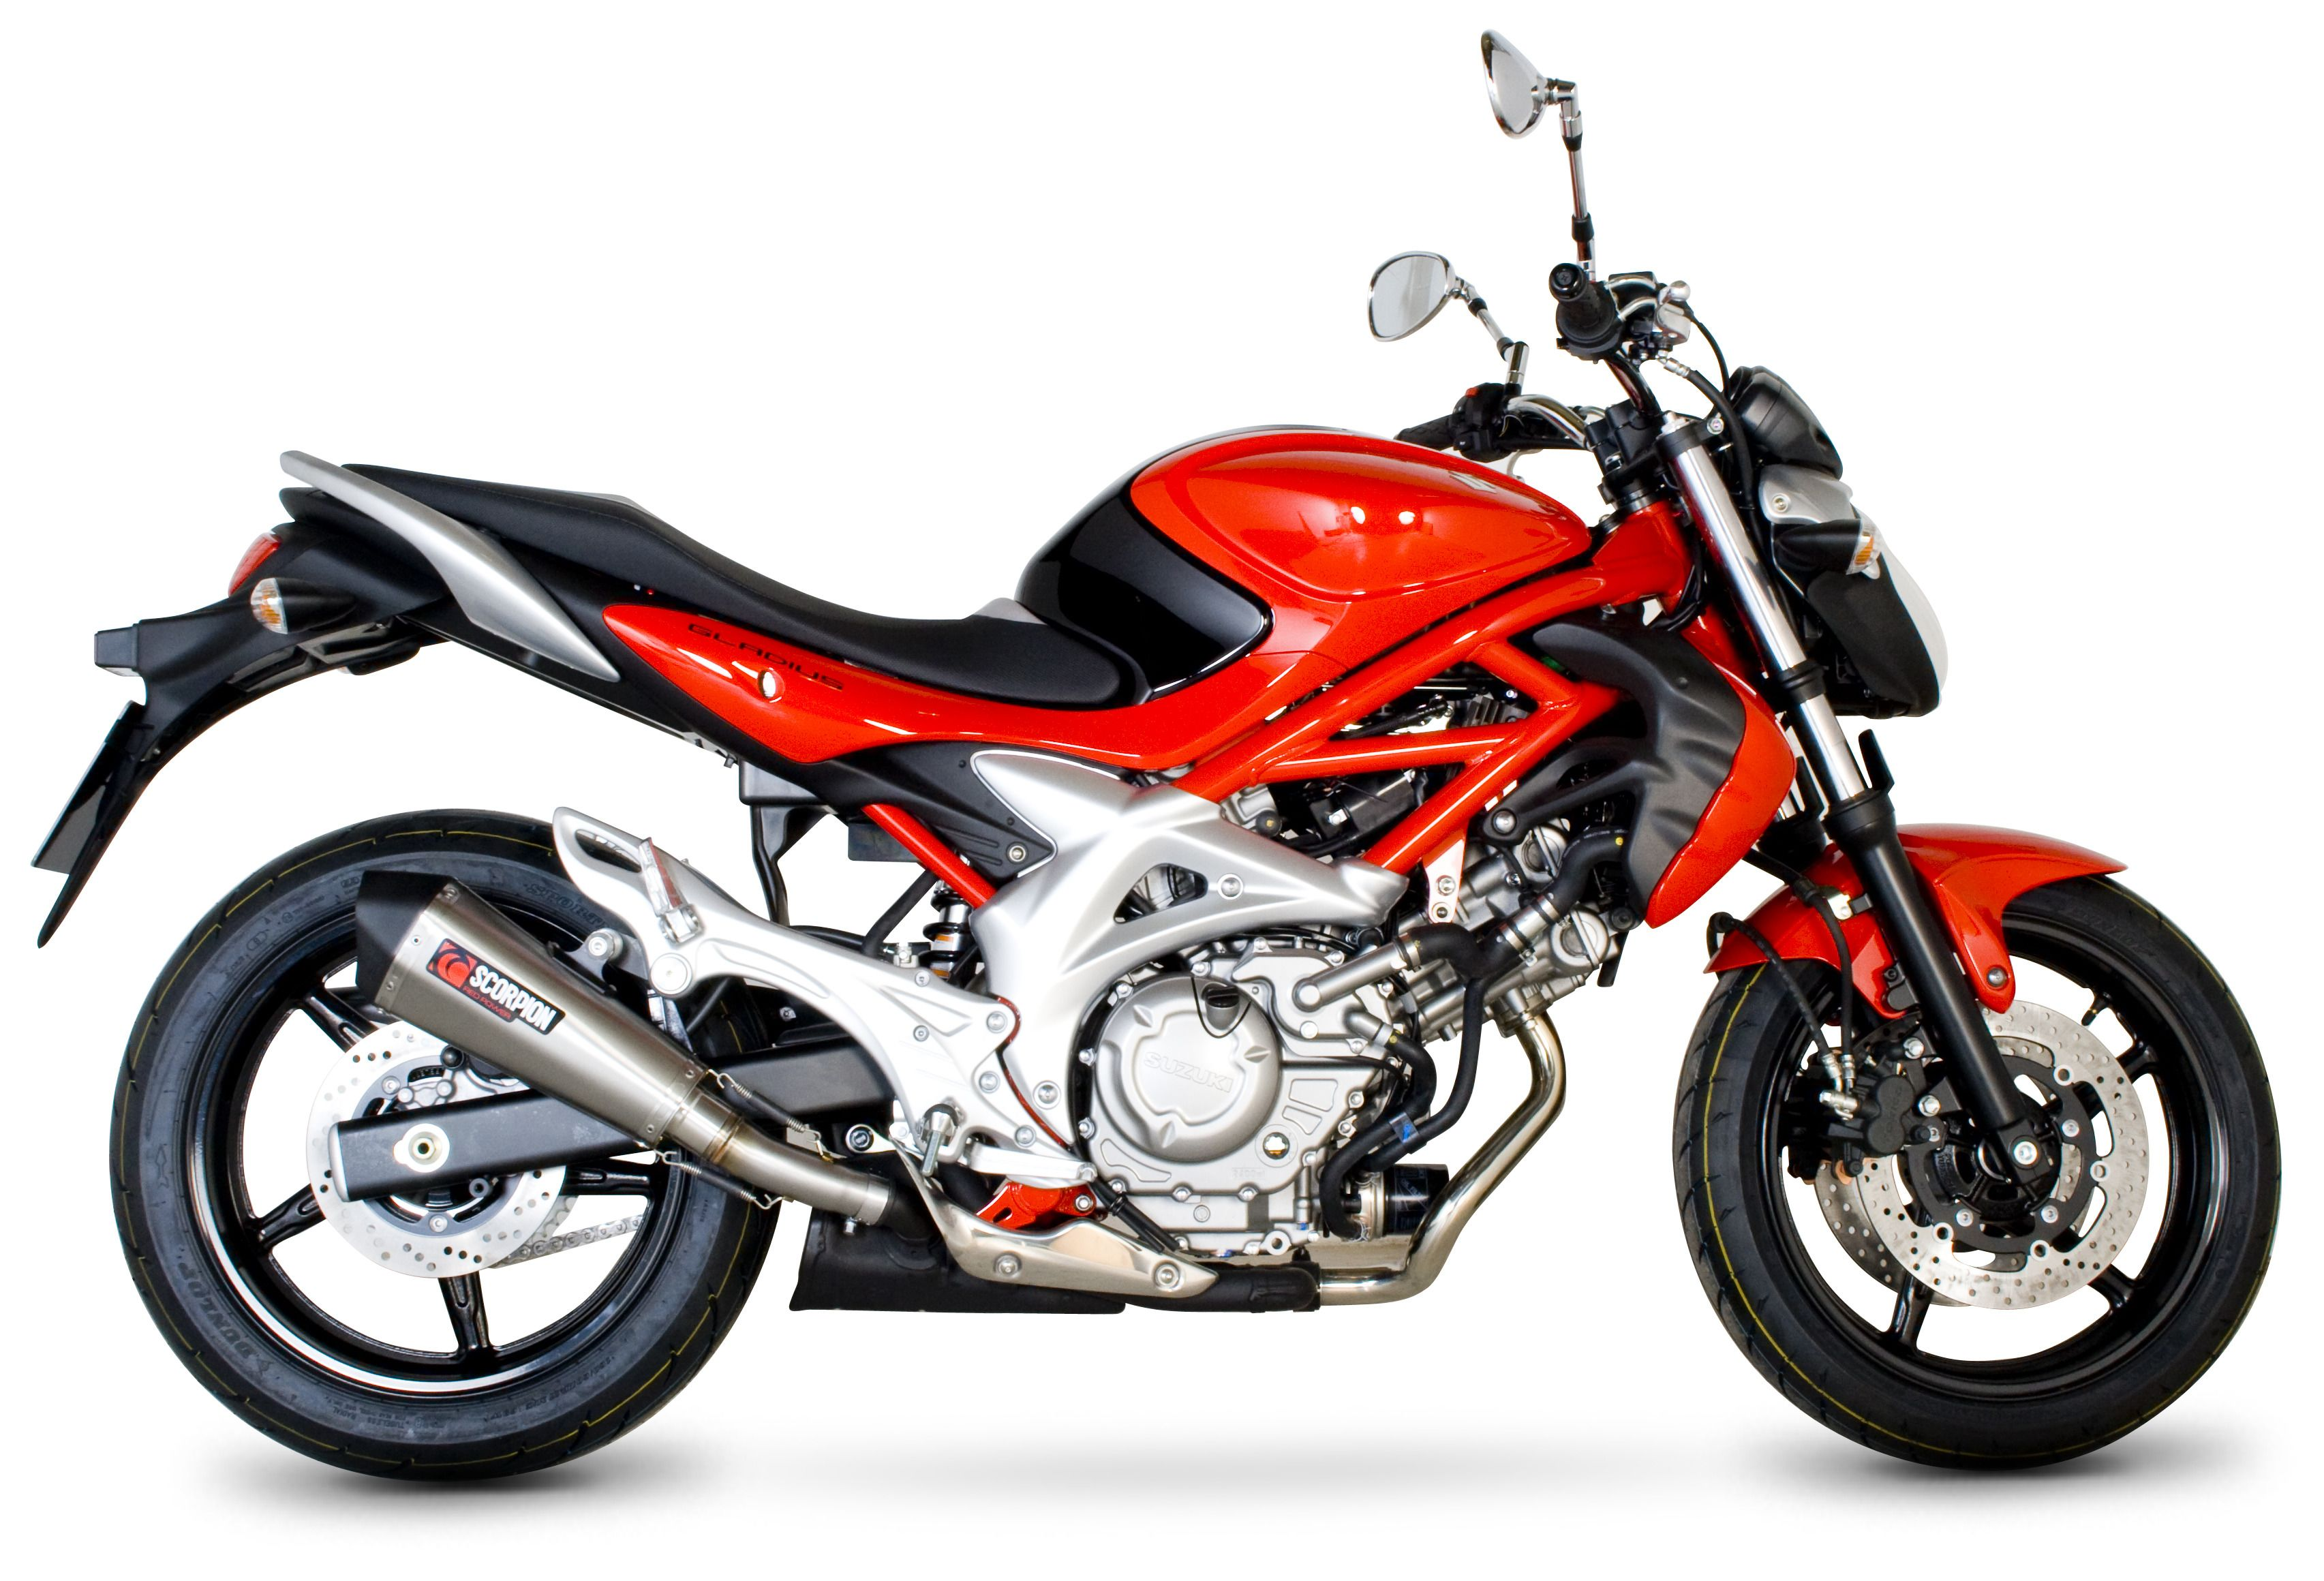 Suzuki Gladius Scorpion Exhaust